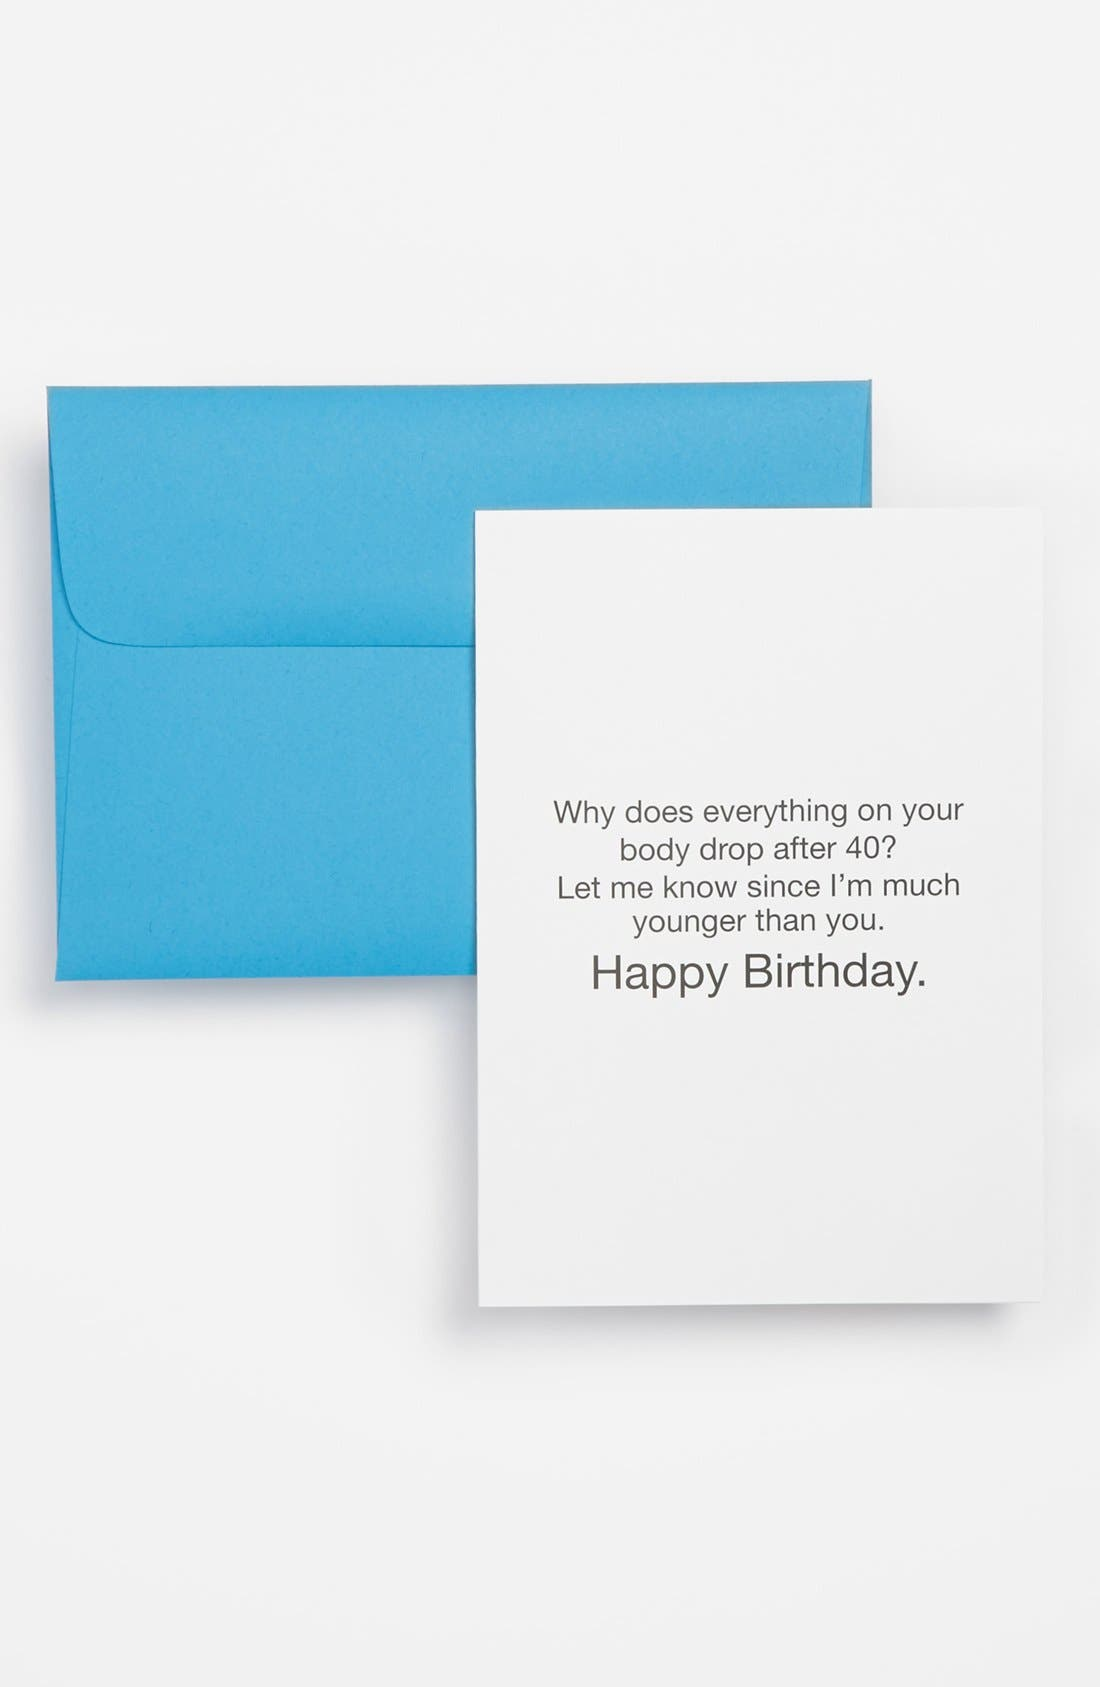 Alternate Image 1 Selected - 'Younger than You' Cards (Set of 6)